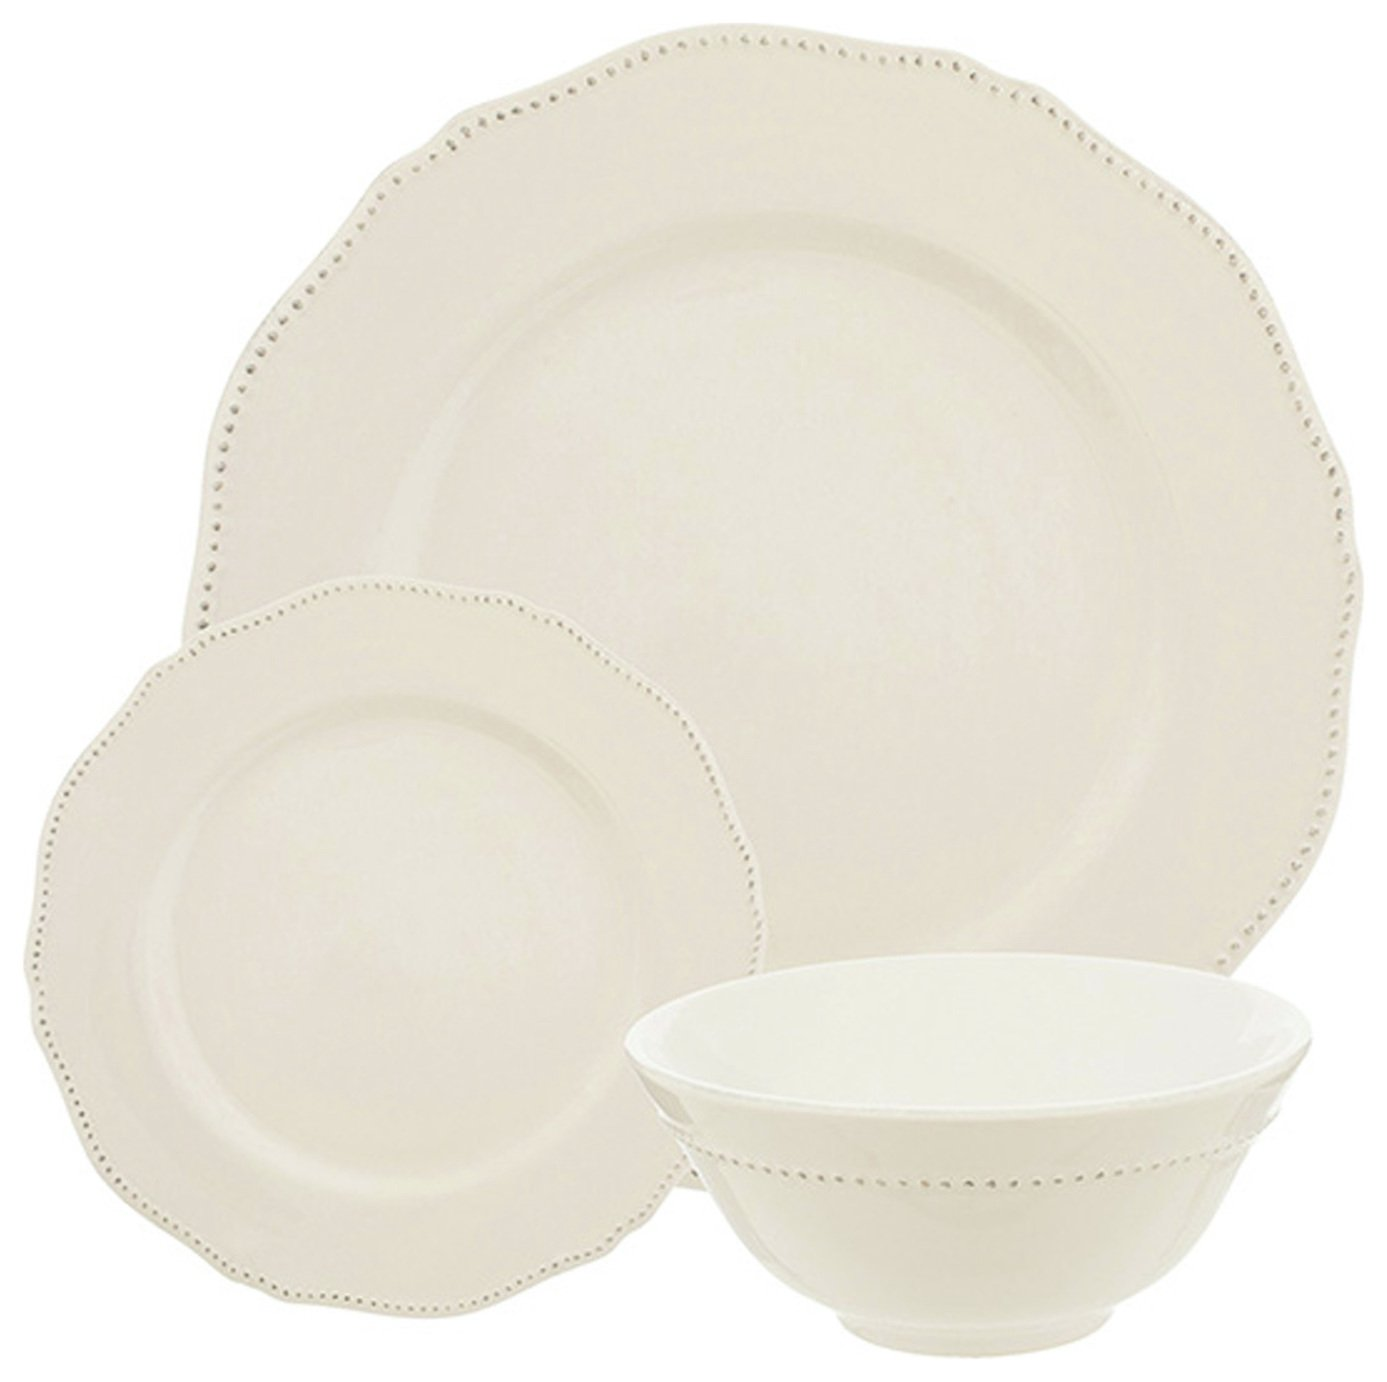 Sainsbury's Home 12 Piece Palatial Dinner Set